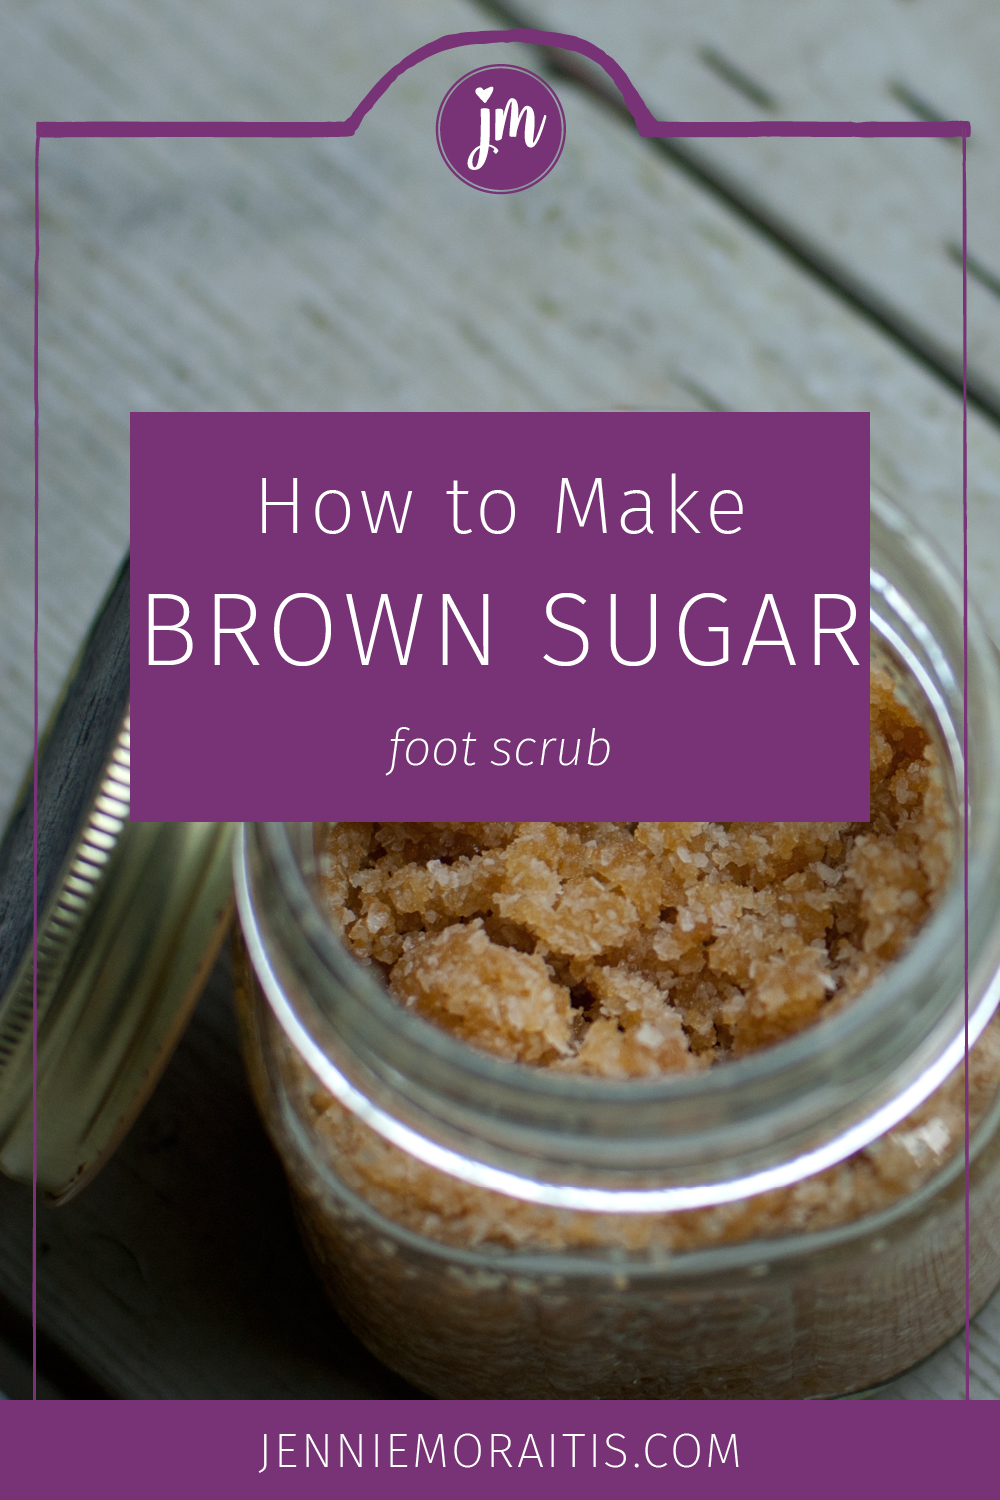 This brown sugar foot scrub is perfect for a DIY gift for a friend or yourself! You can use essential oils in this recipe to give your feet a spa treatment after a long day.